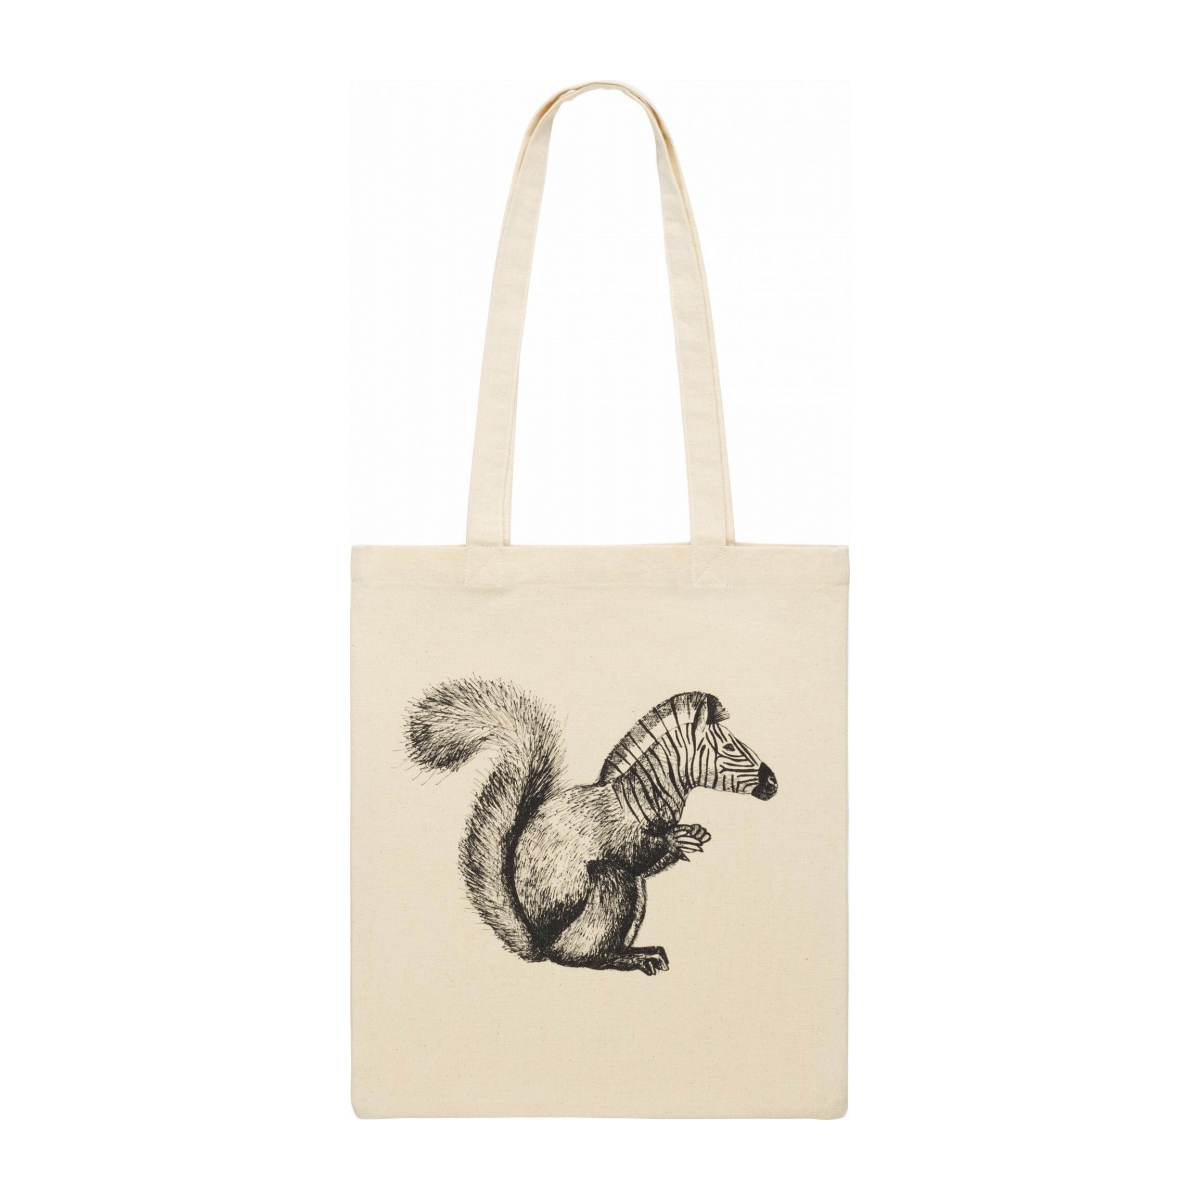 Black and White Patterned Cotton Shopping Bag 35x40cm n°2